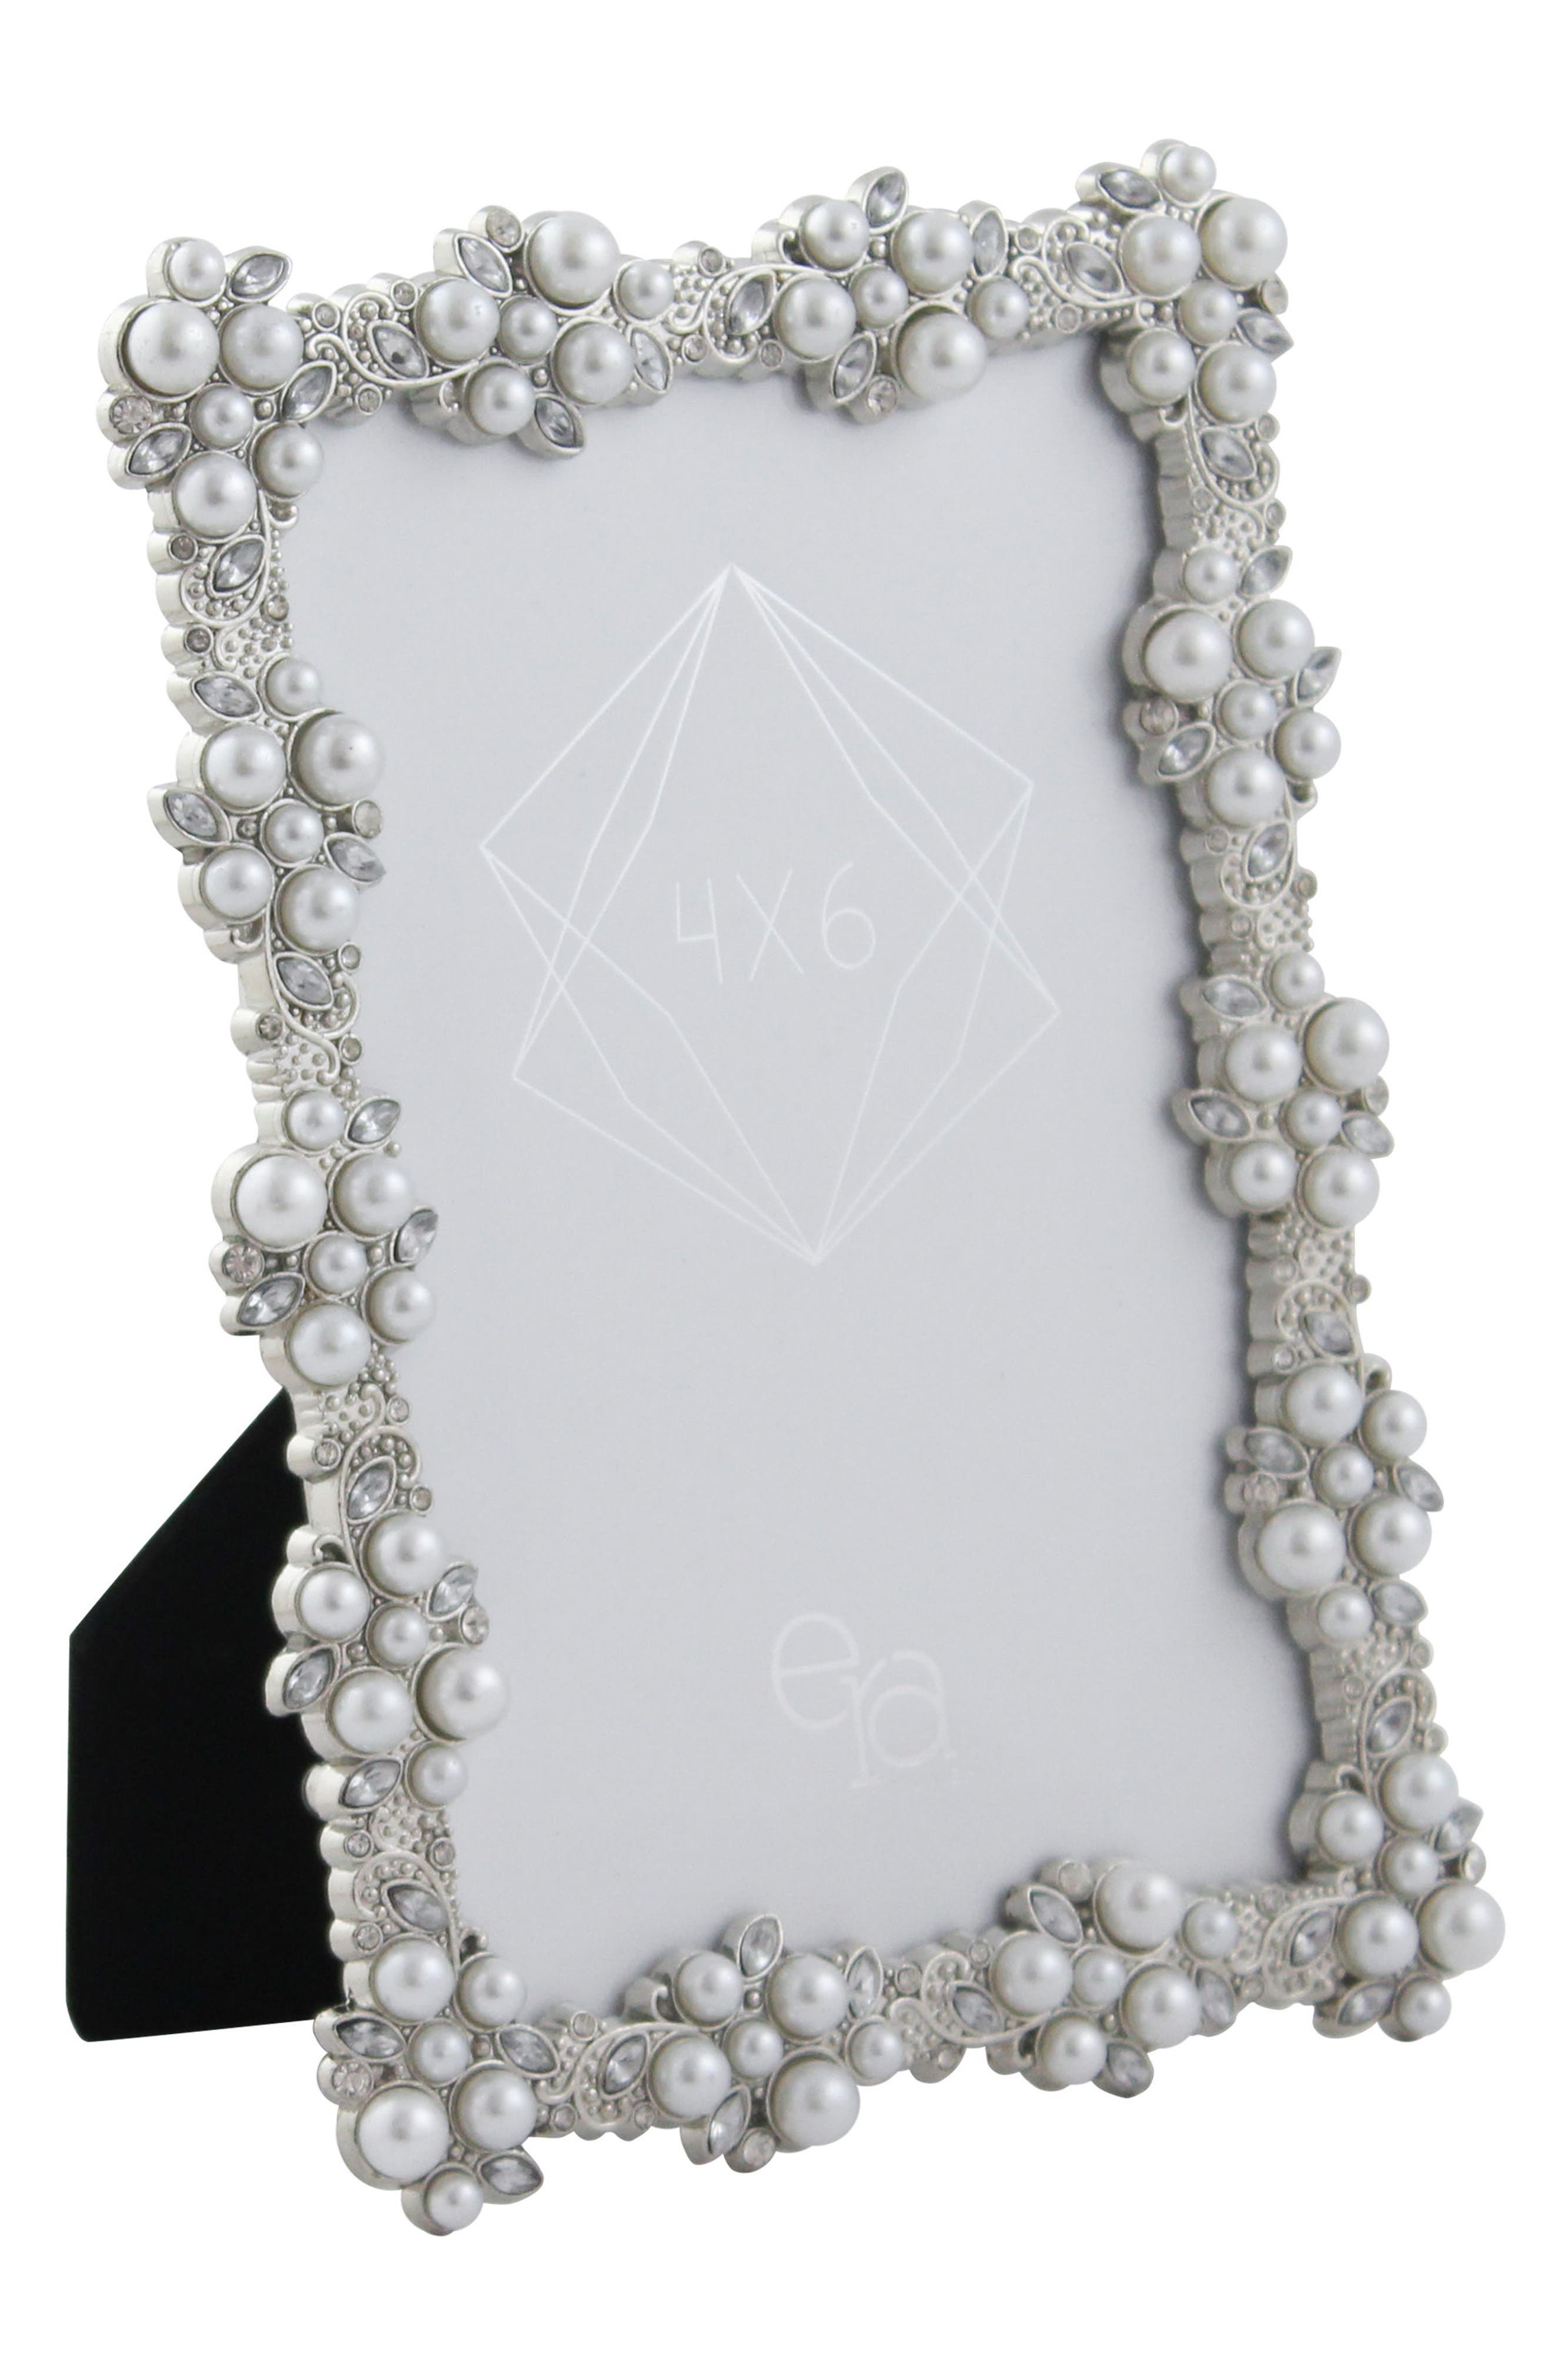 Crystal & Imitation Pearl Picture Frame,                             Main thumbnail 1, color,                             040